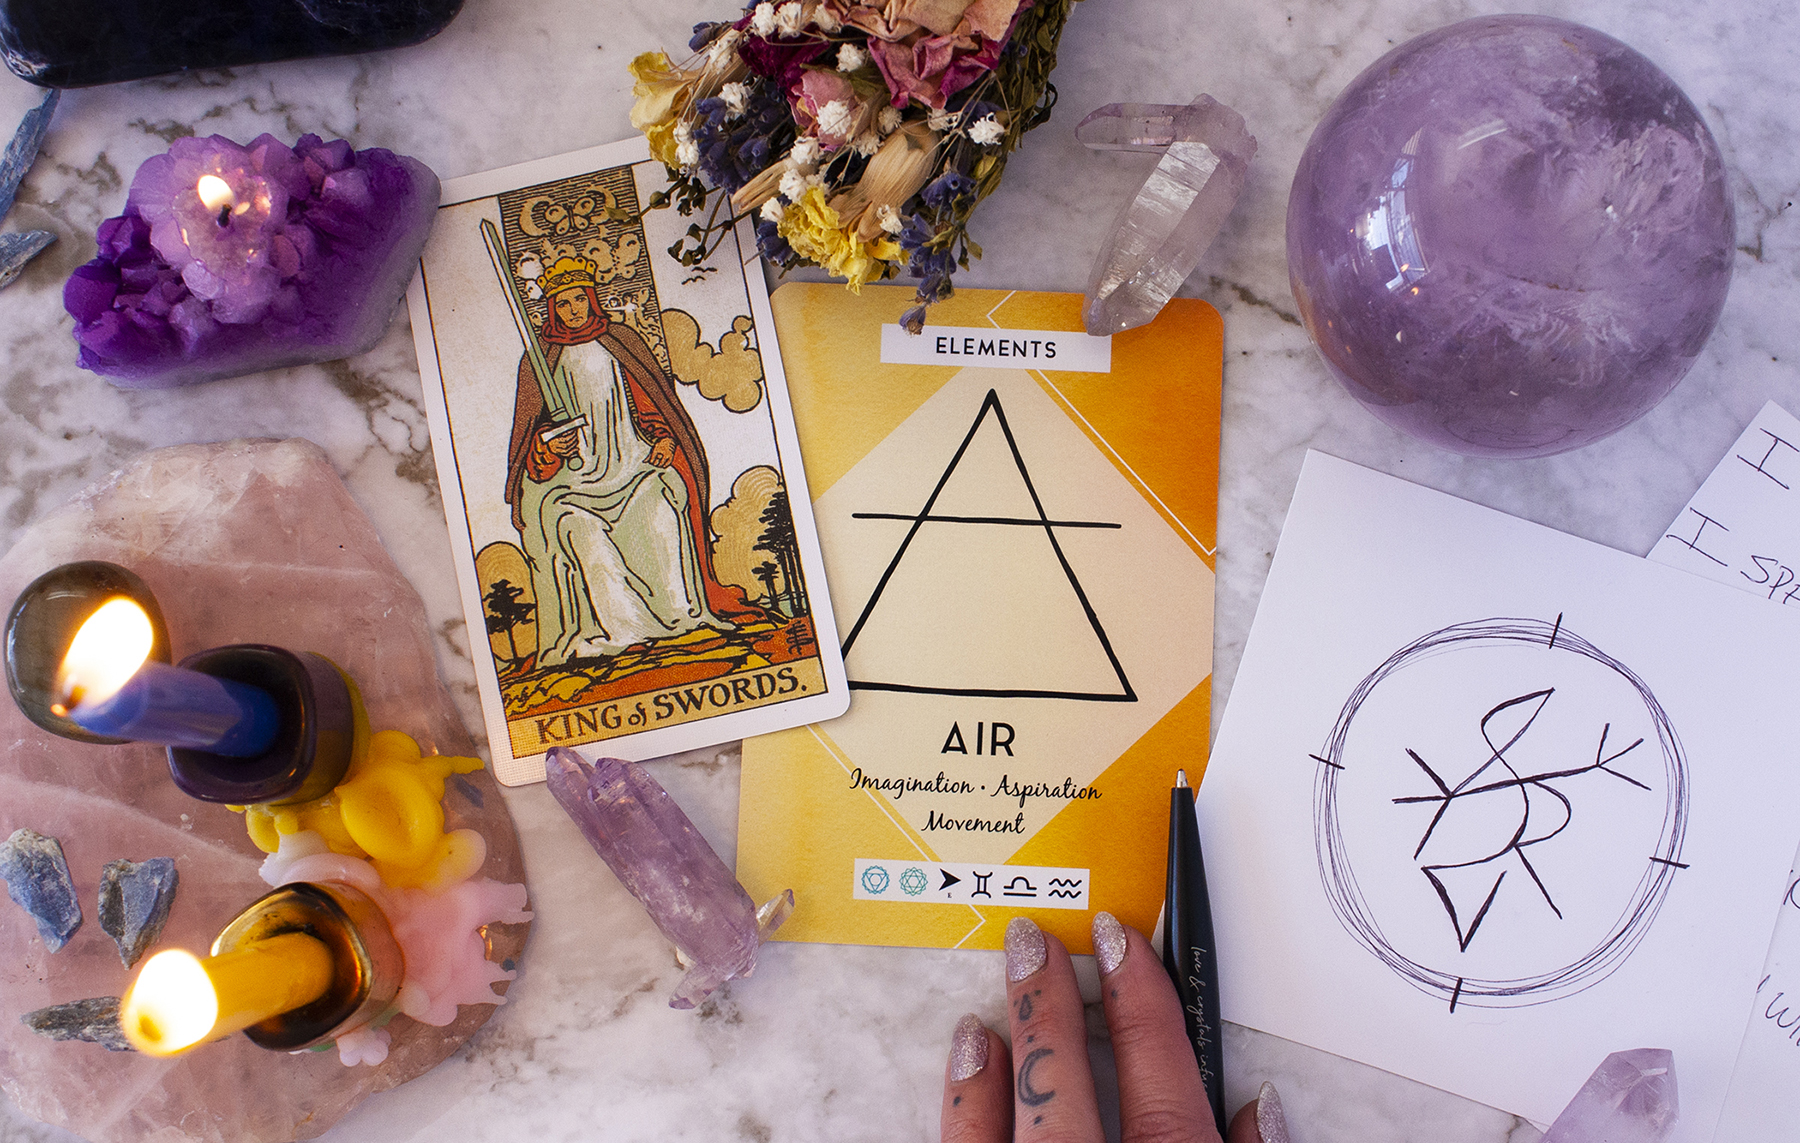 card spread for aquarius season and sigil ritual